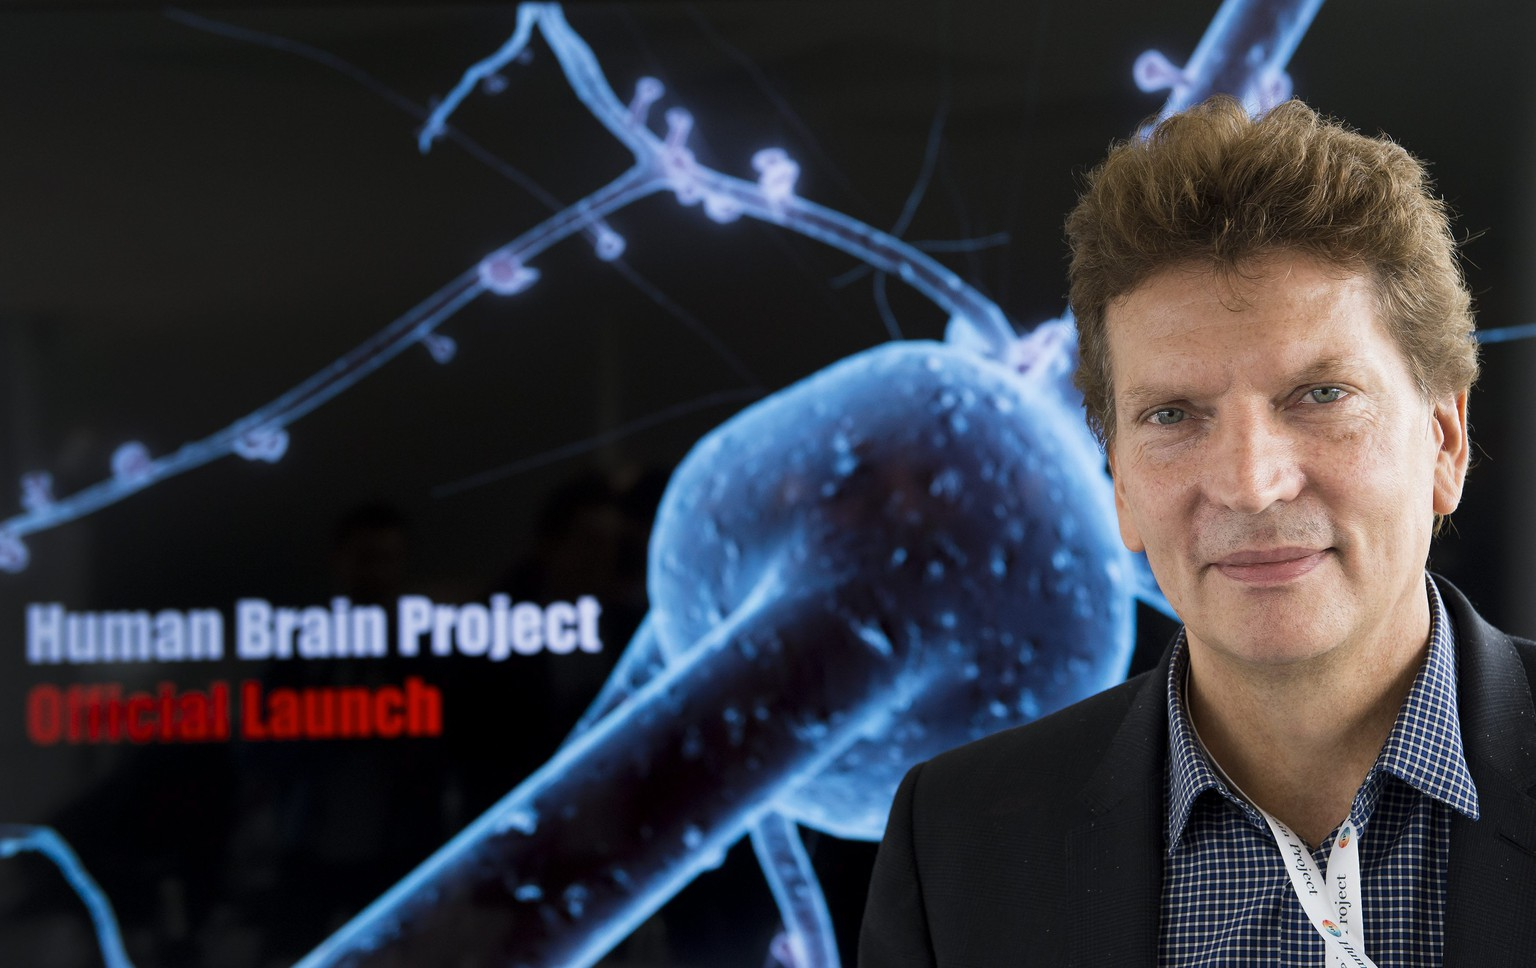 Henry Markram, neuroscientist and coordinator of the Human Brain Project (HBP), reacts during a press conference, at the Ecole Polytechnique Federale de Lausanne (EPFL) in Lausanne, Switzerland, Monday, October 7, 2013. The world's most ambitious neuroscience project is underway. Scientists from the 135 partner institutions of the Human Brain Project, co-funded by the EU with an estimated budget of 1.2 billion Euro, are meeting in Switzerland for the official launch. (KEYSTONE/Jean-Christophe Bott)